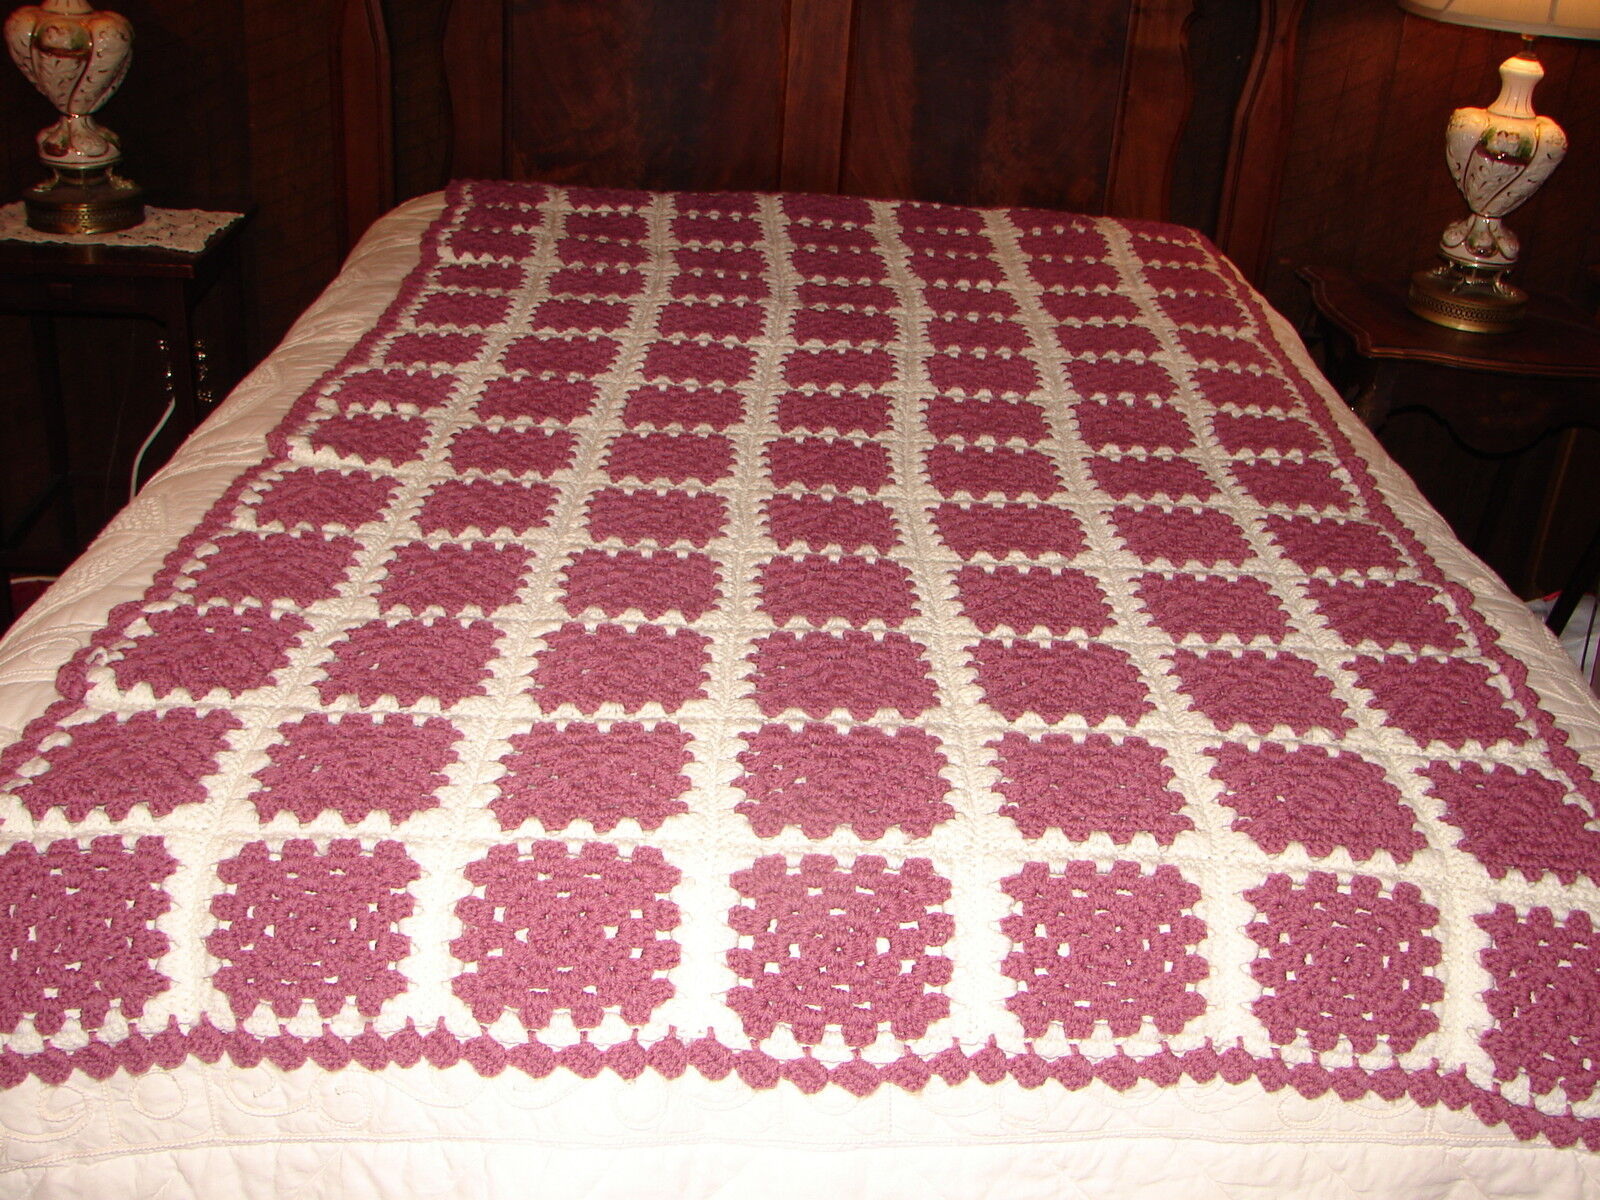 NEW AFGHAN   Handmade HANDCRAFTED Crochet Throw Blanket Afghan Granny Square